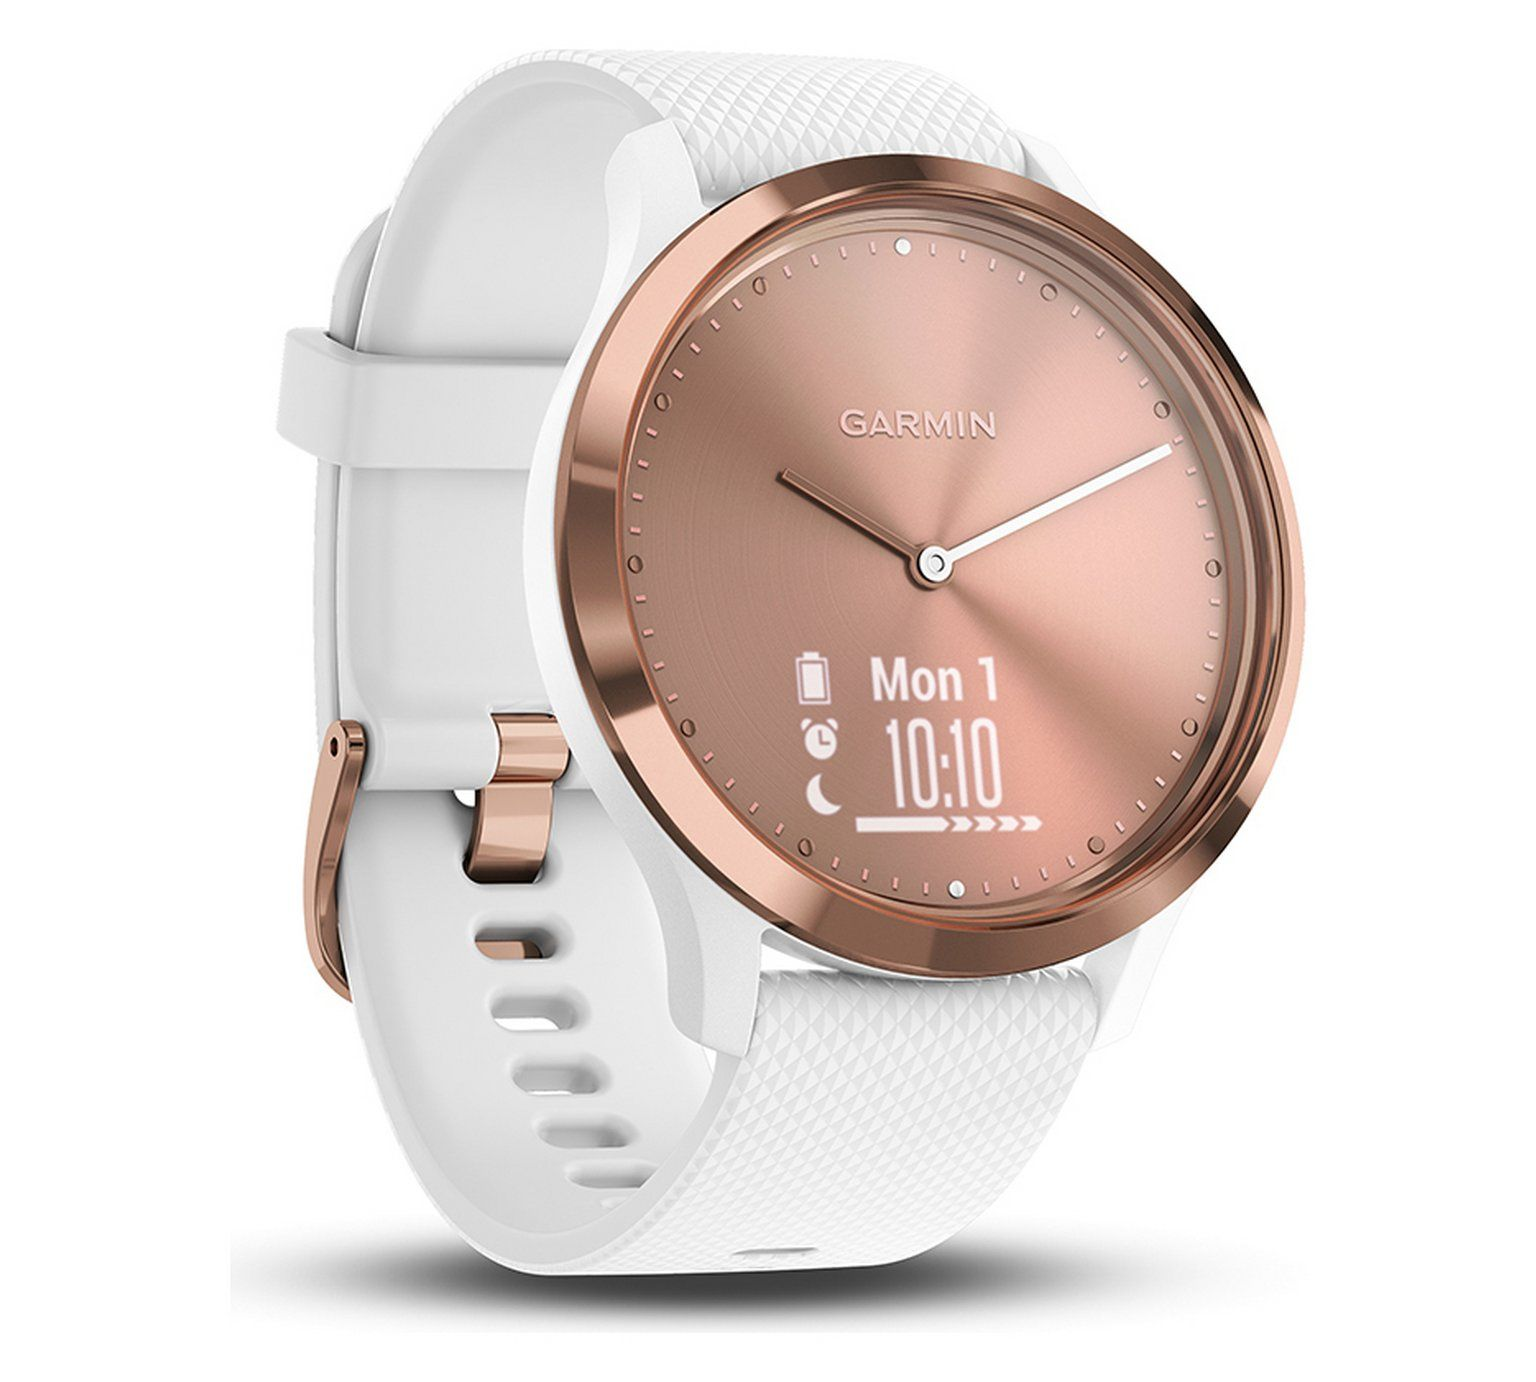 Head To The Site Above Simply Press The Grey Link For Extra Alternatives Smart Watch Tracker Rose Gold Watches Smart Watch Garmin